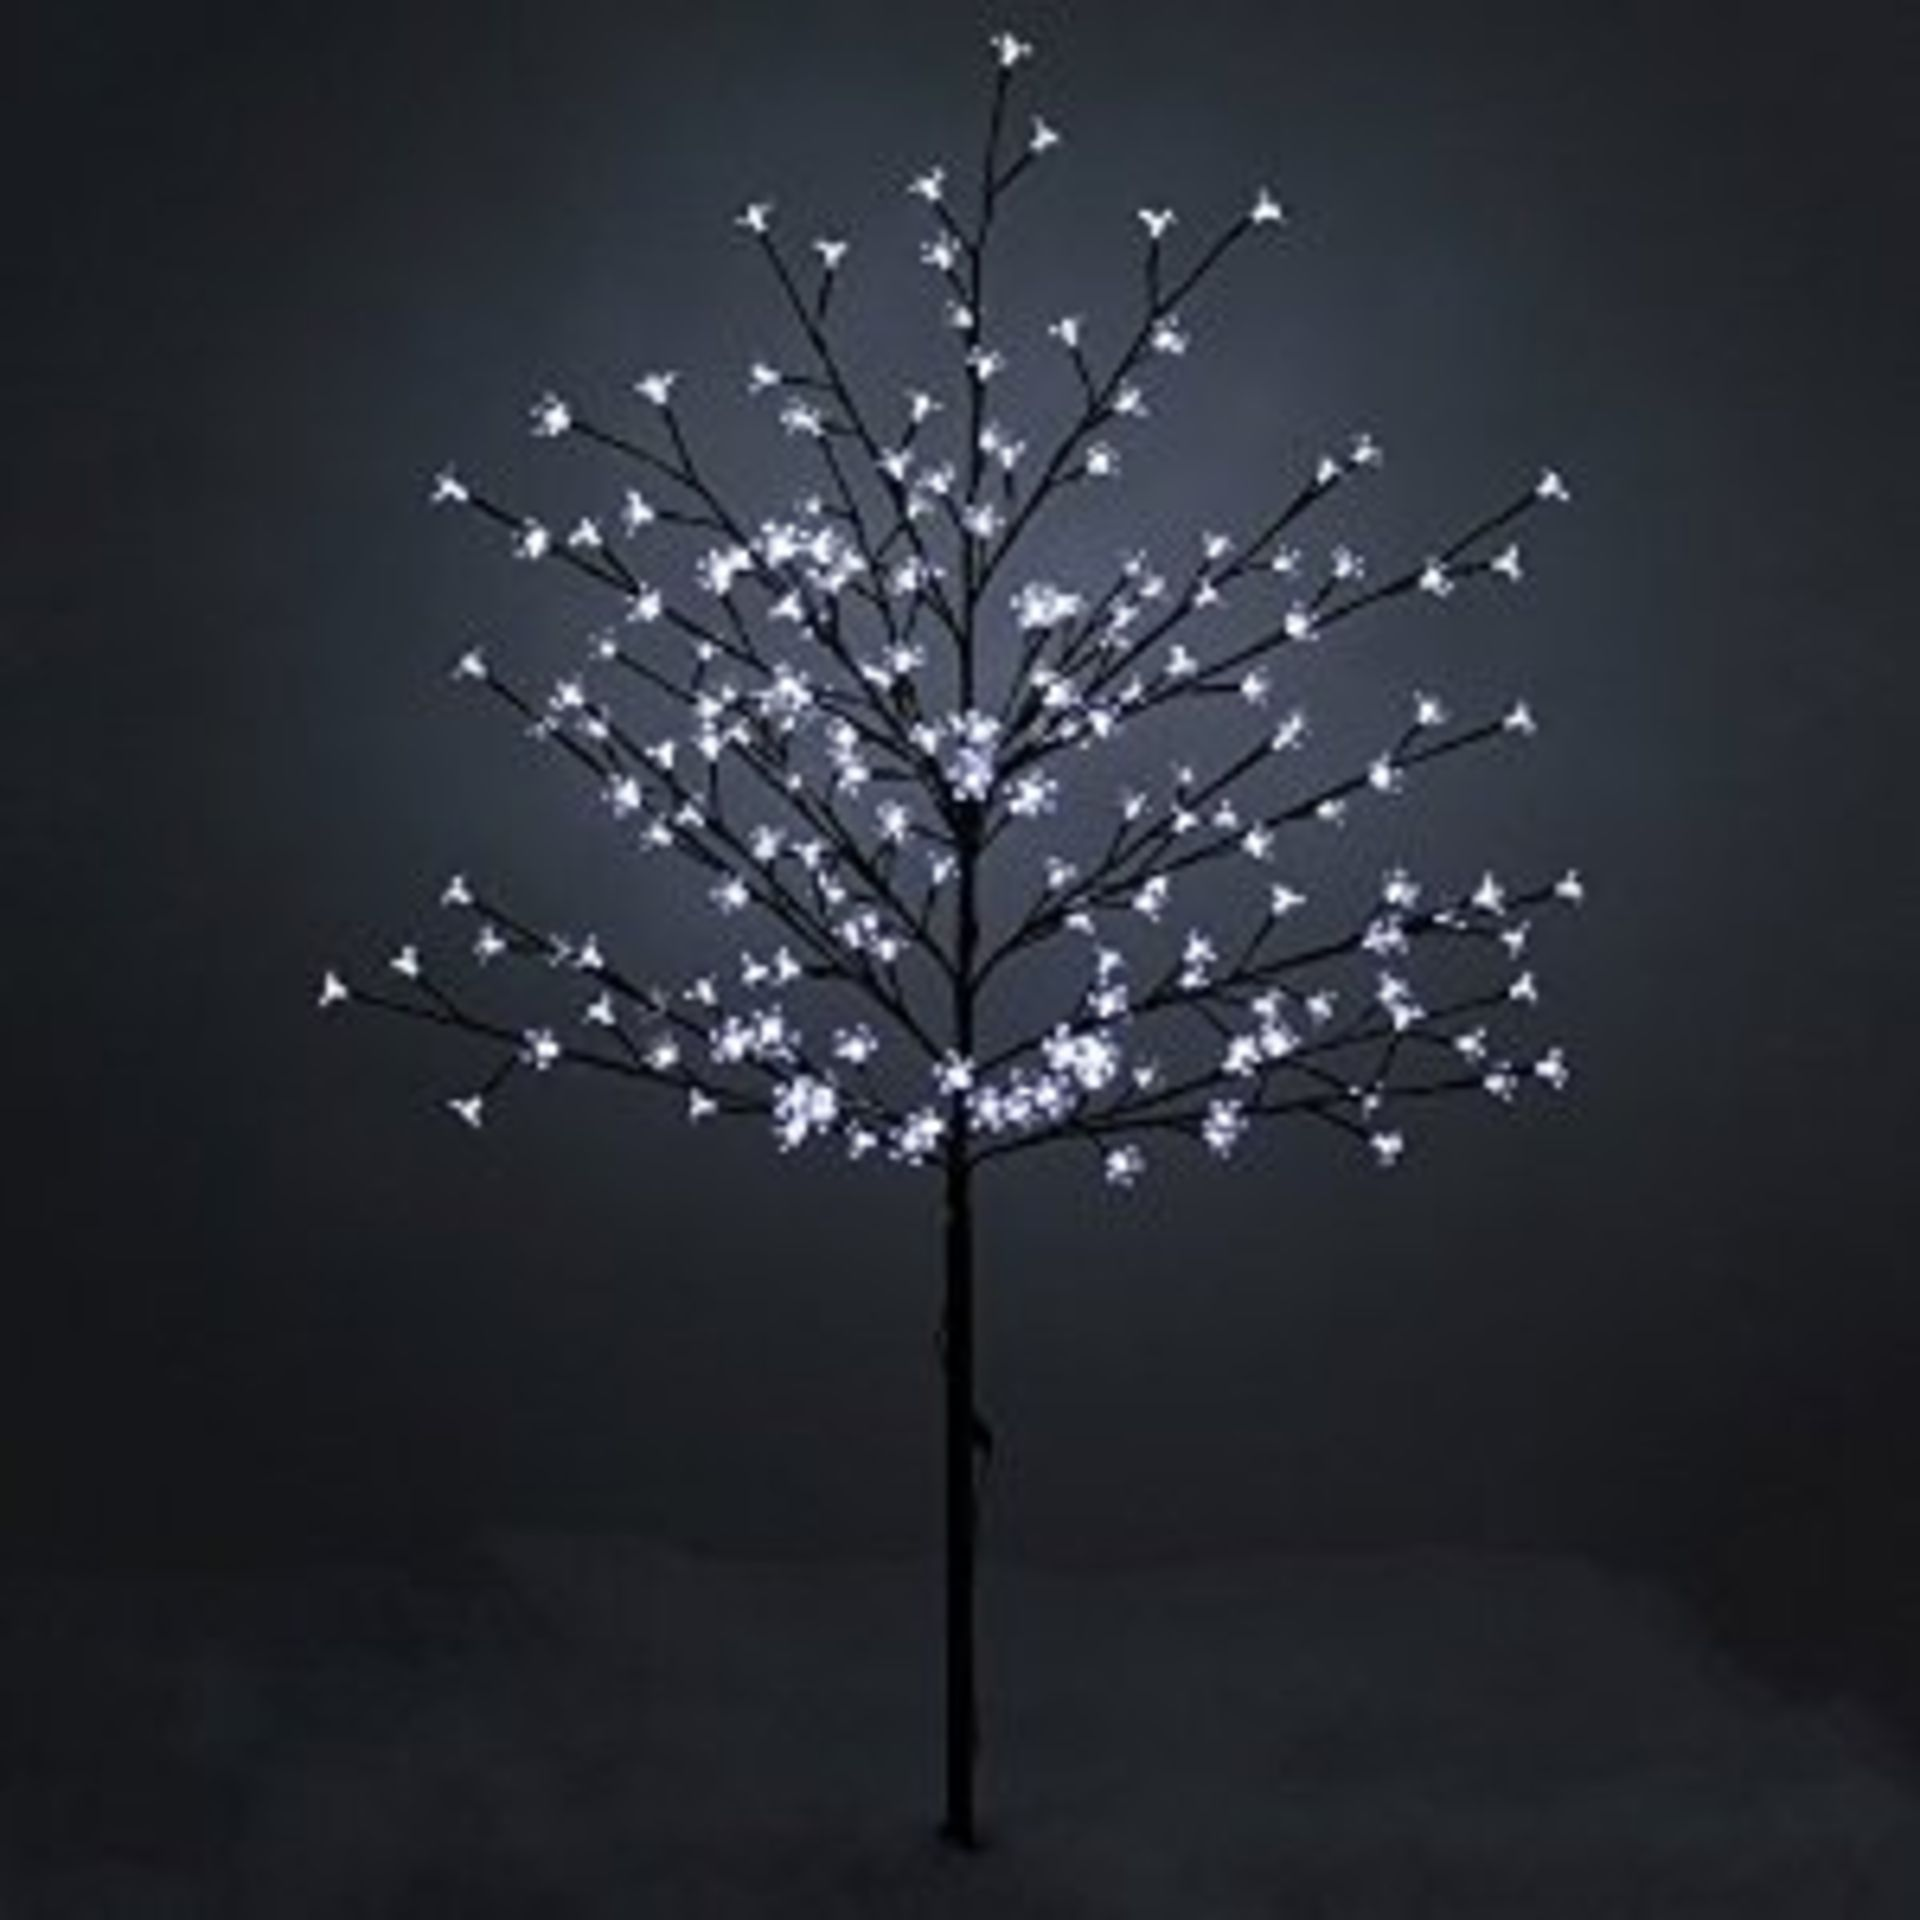 Lot 11829 - V Brand New 150cm Snow White LED Blossom Tree For Indoor And Outdoor Use RRP £54.99